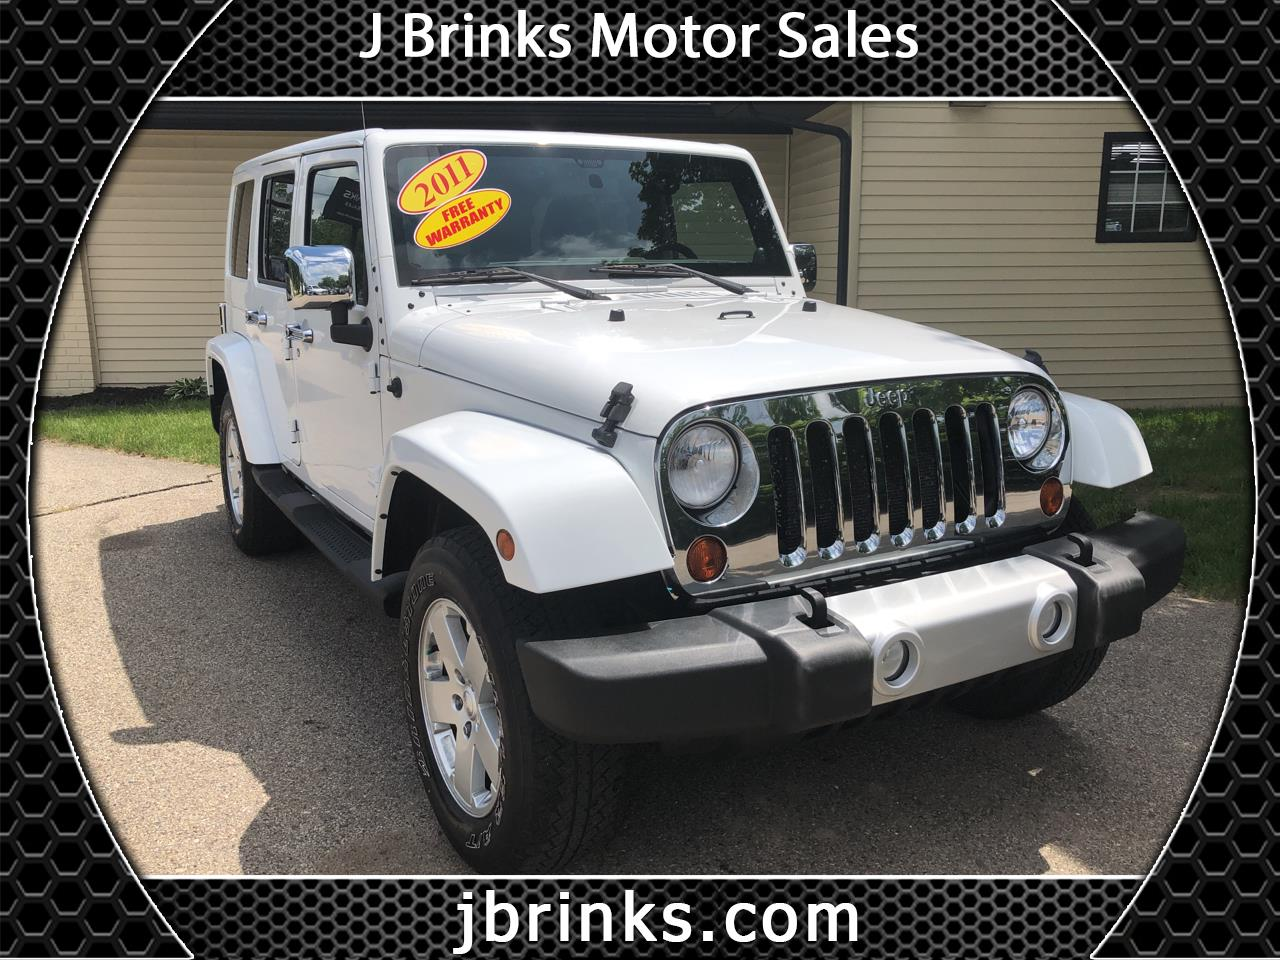 2011 Jeep Wrangler Unlimited 4WD 4dr Sahara